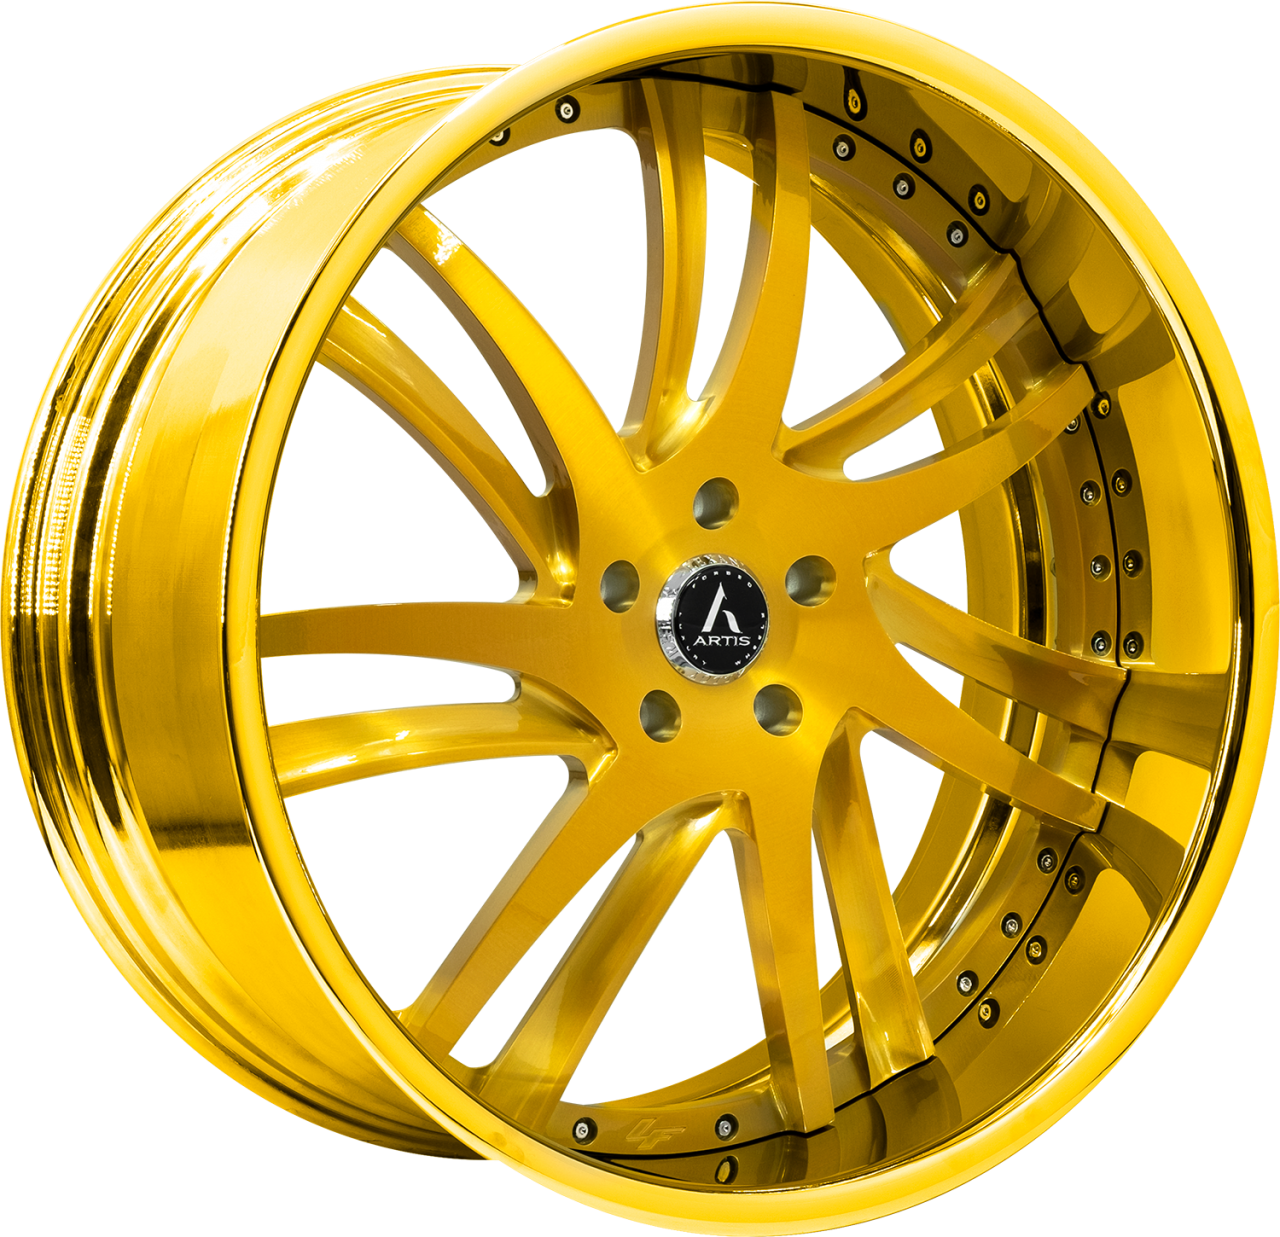 Artis Forged Profile wheel with Gold Finish finish